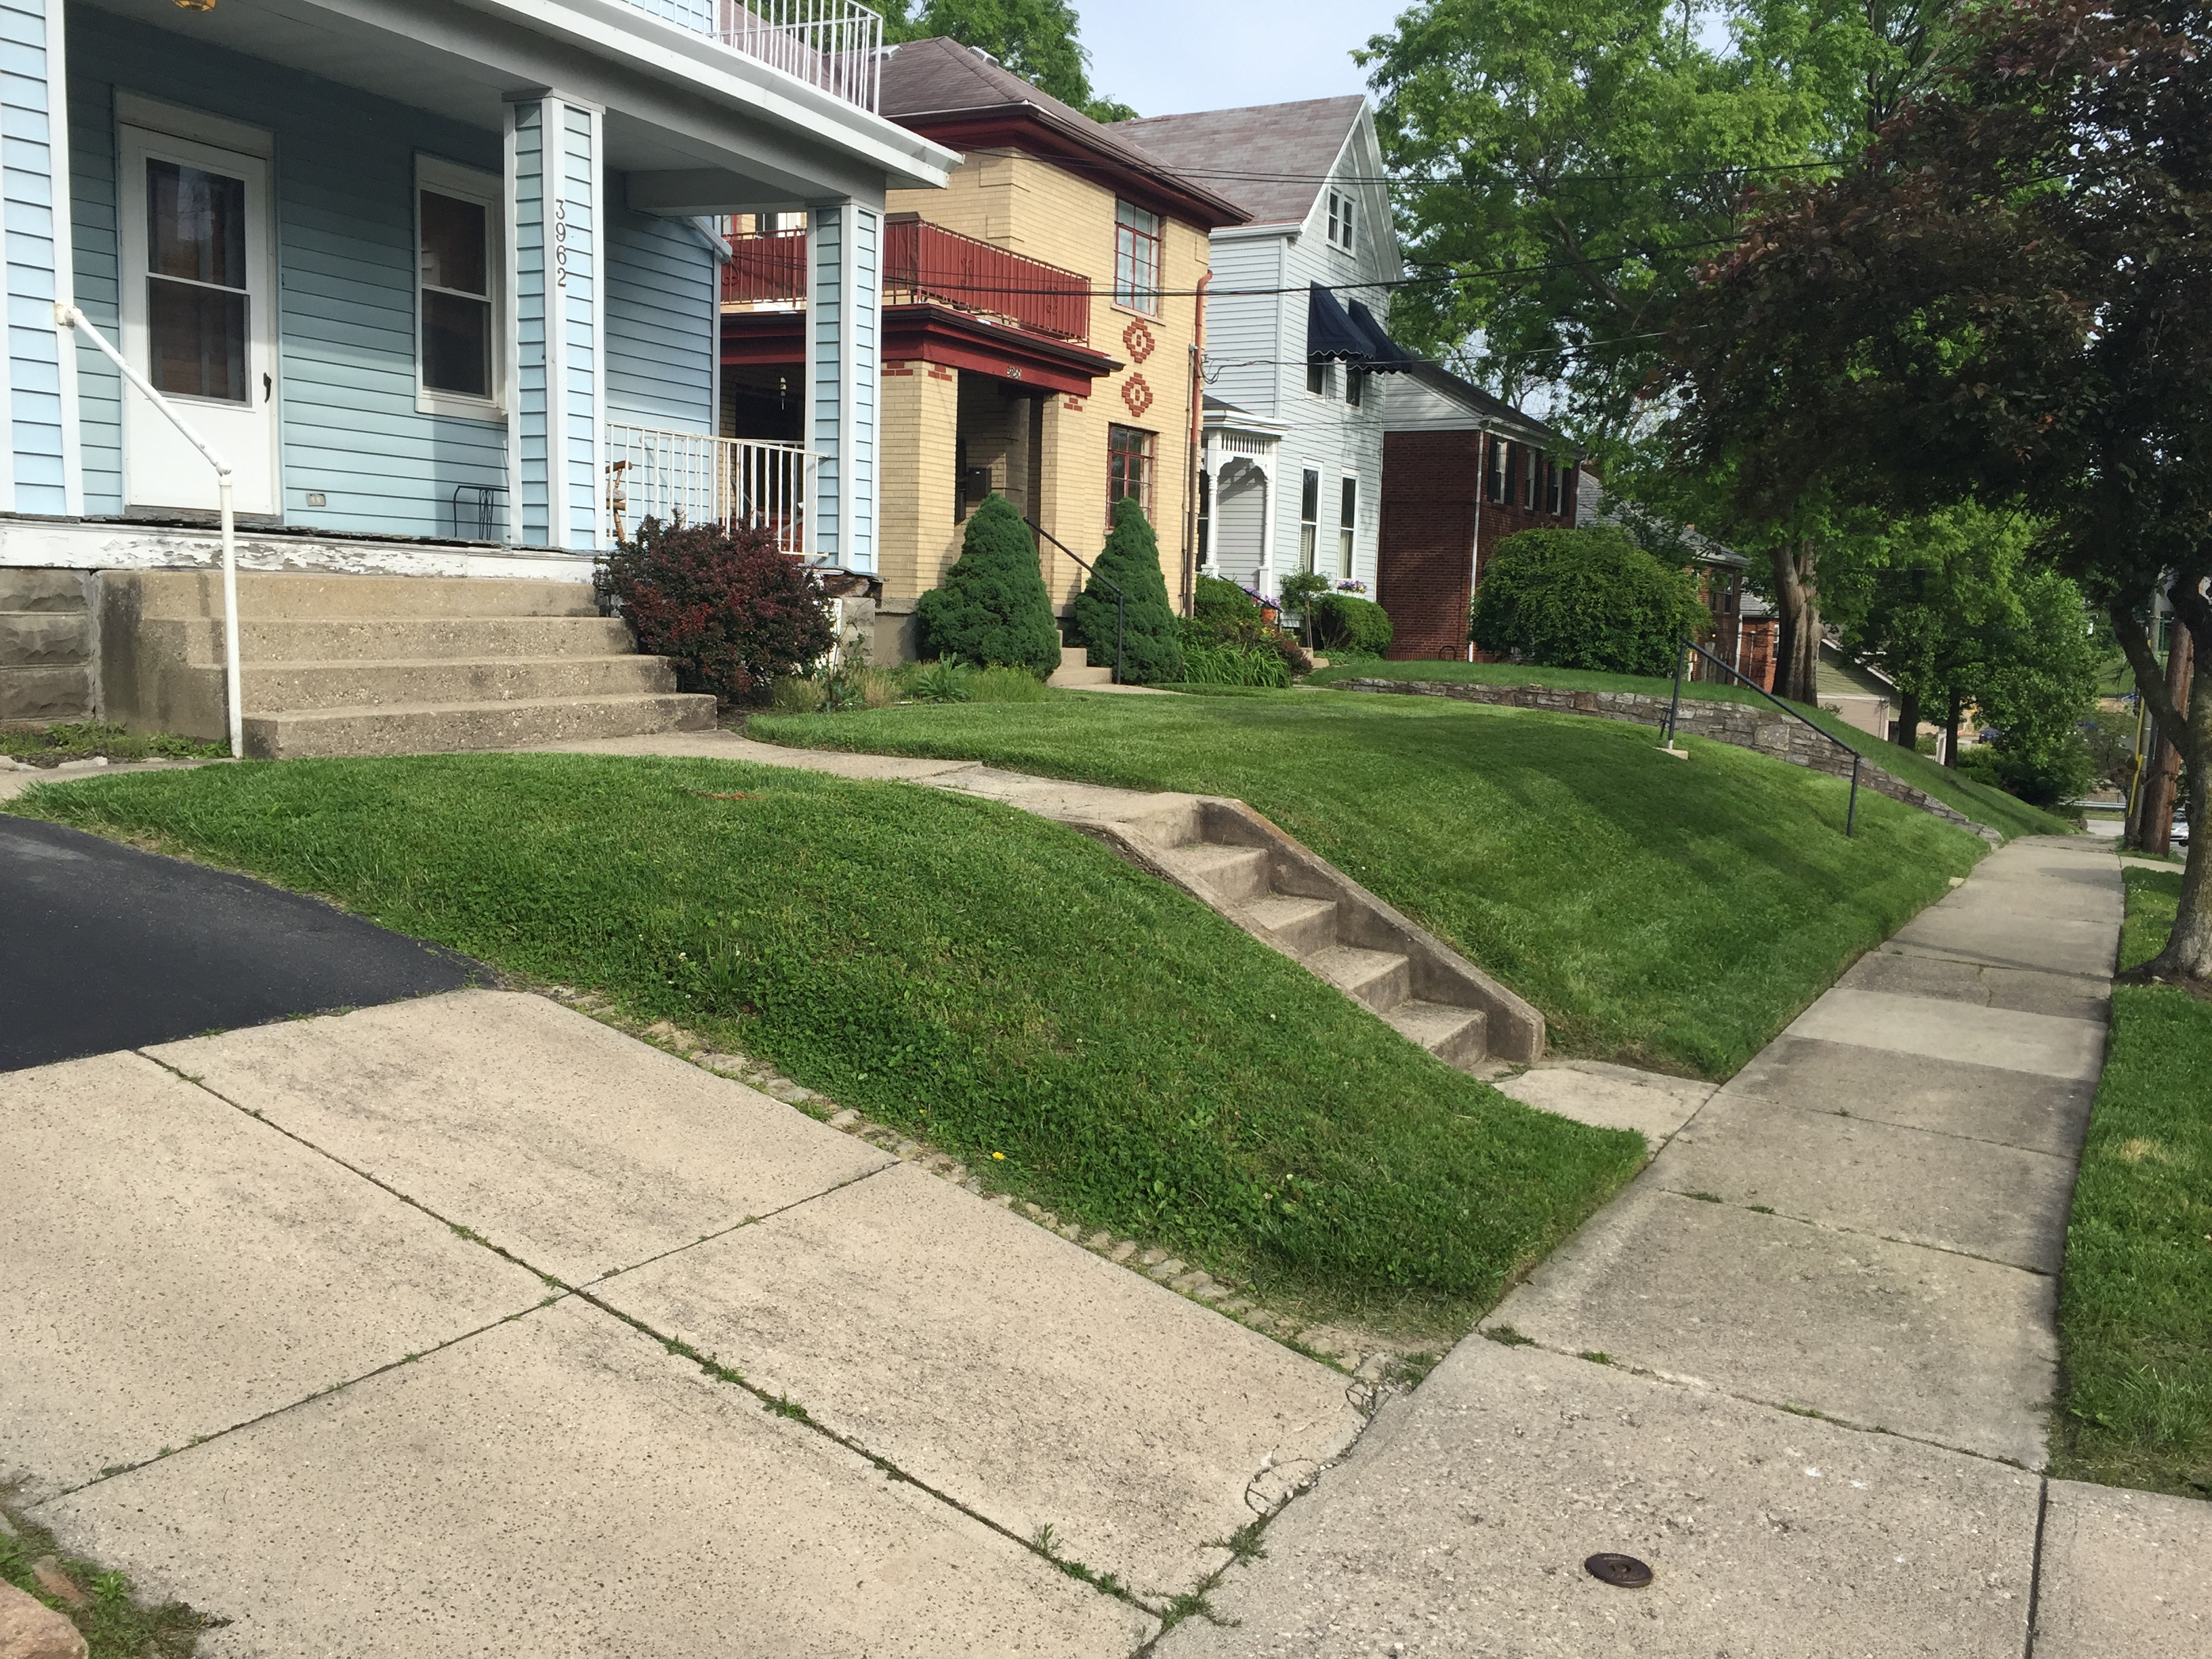 Lawn Care Service in Norwood, OH, 45212